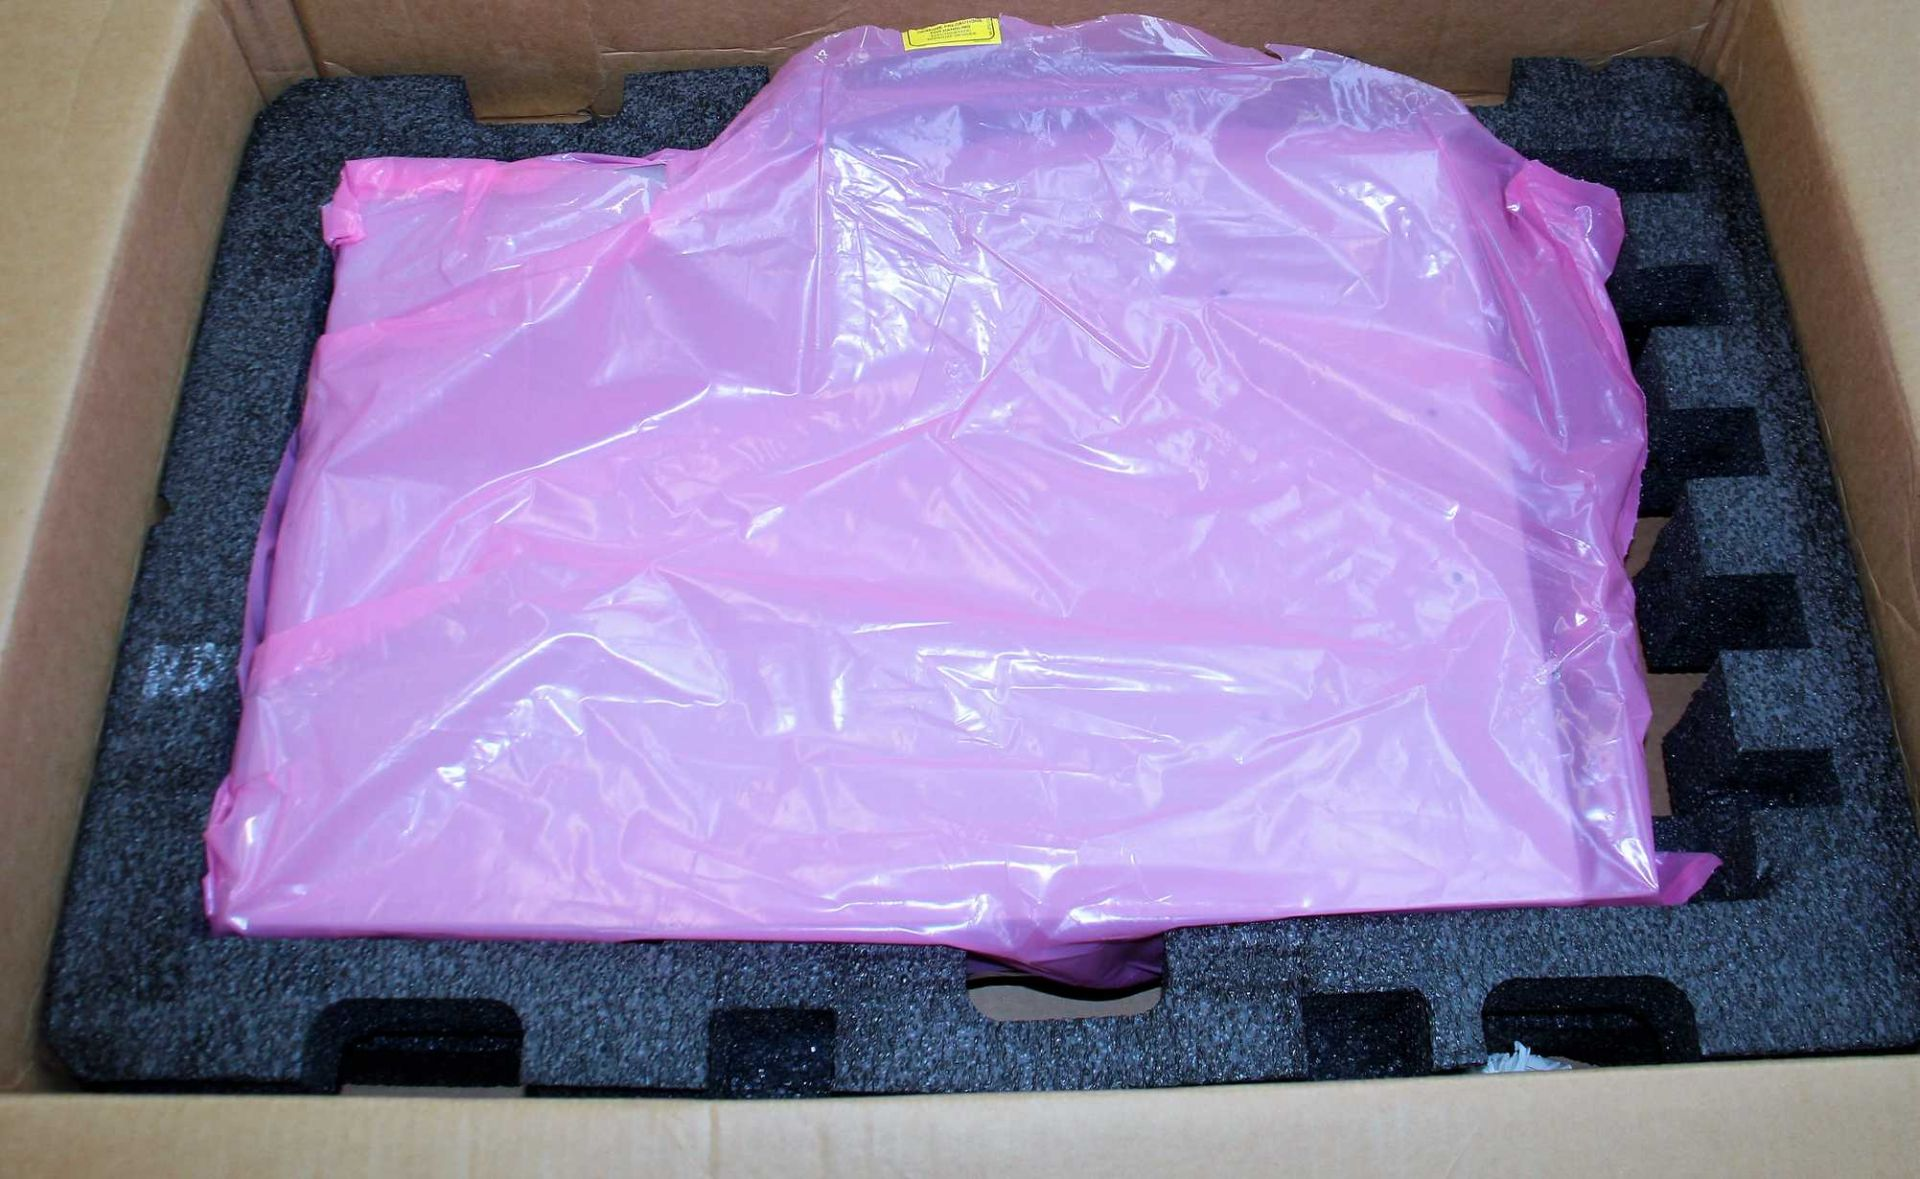 SOLD FOR PARTS: A pre-owned Brocade 6520 96 Port Switch (BR-6520-96-16G-R 80-1007257-04) (Box states - Image 2 of 2